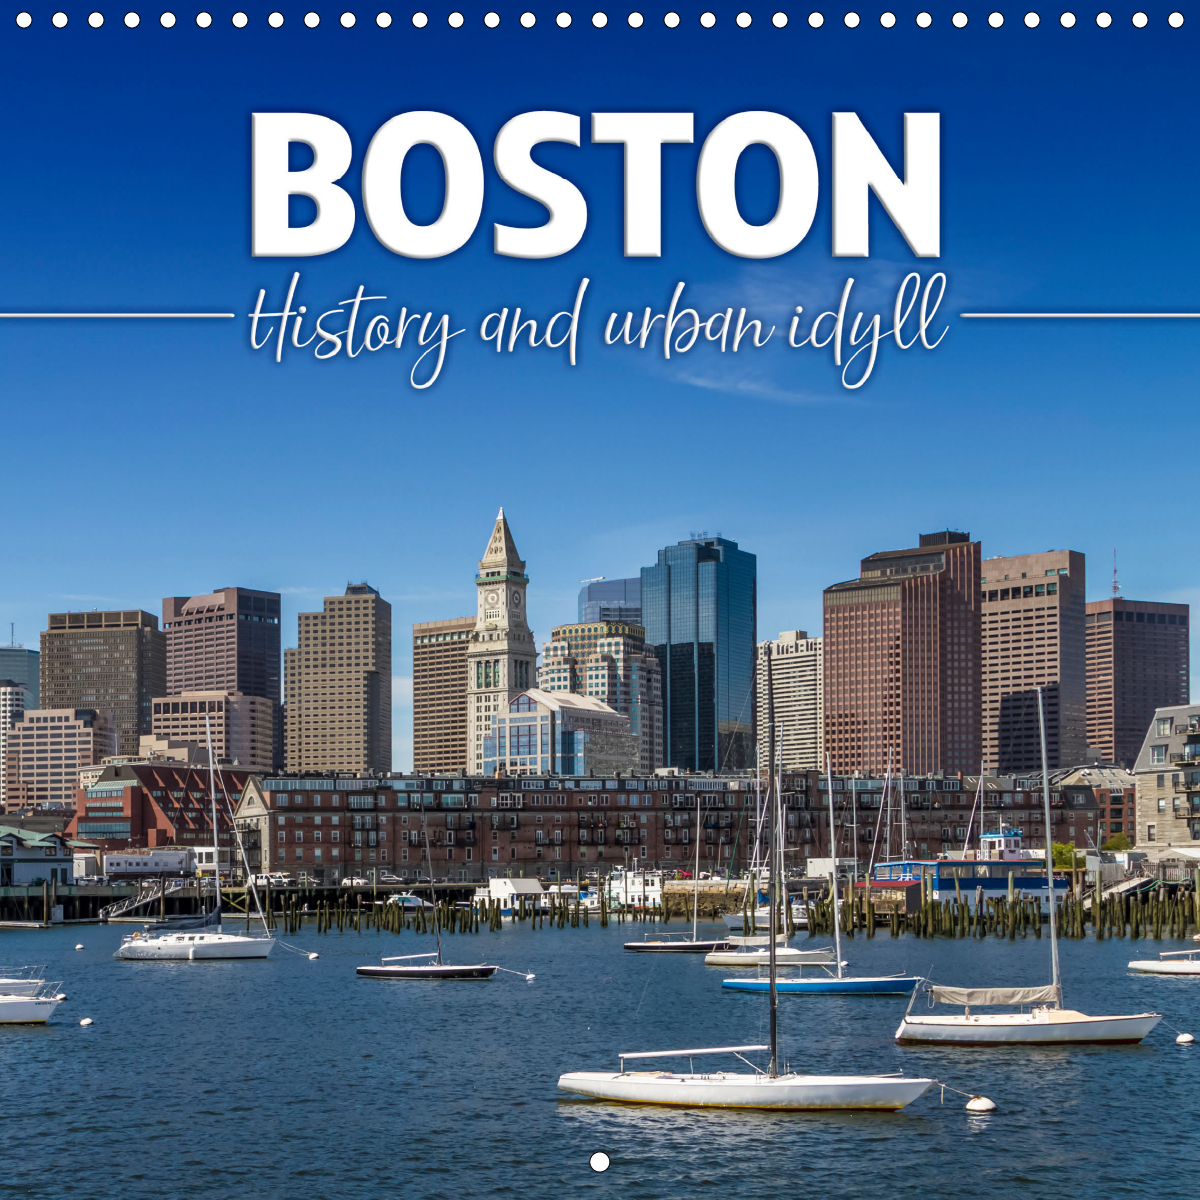 Calendar front - BOSTON History and urban idyll